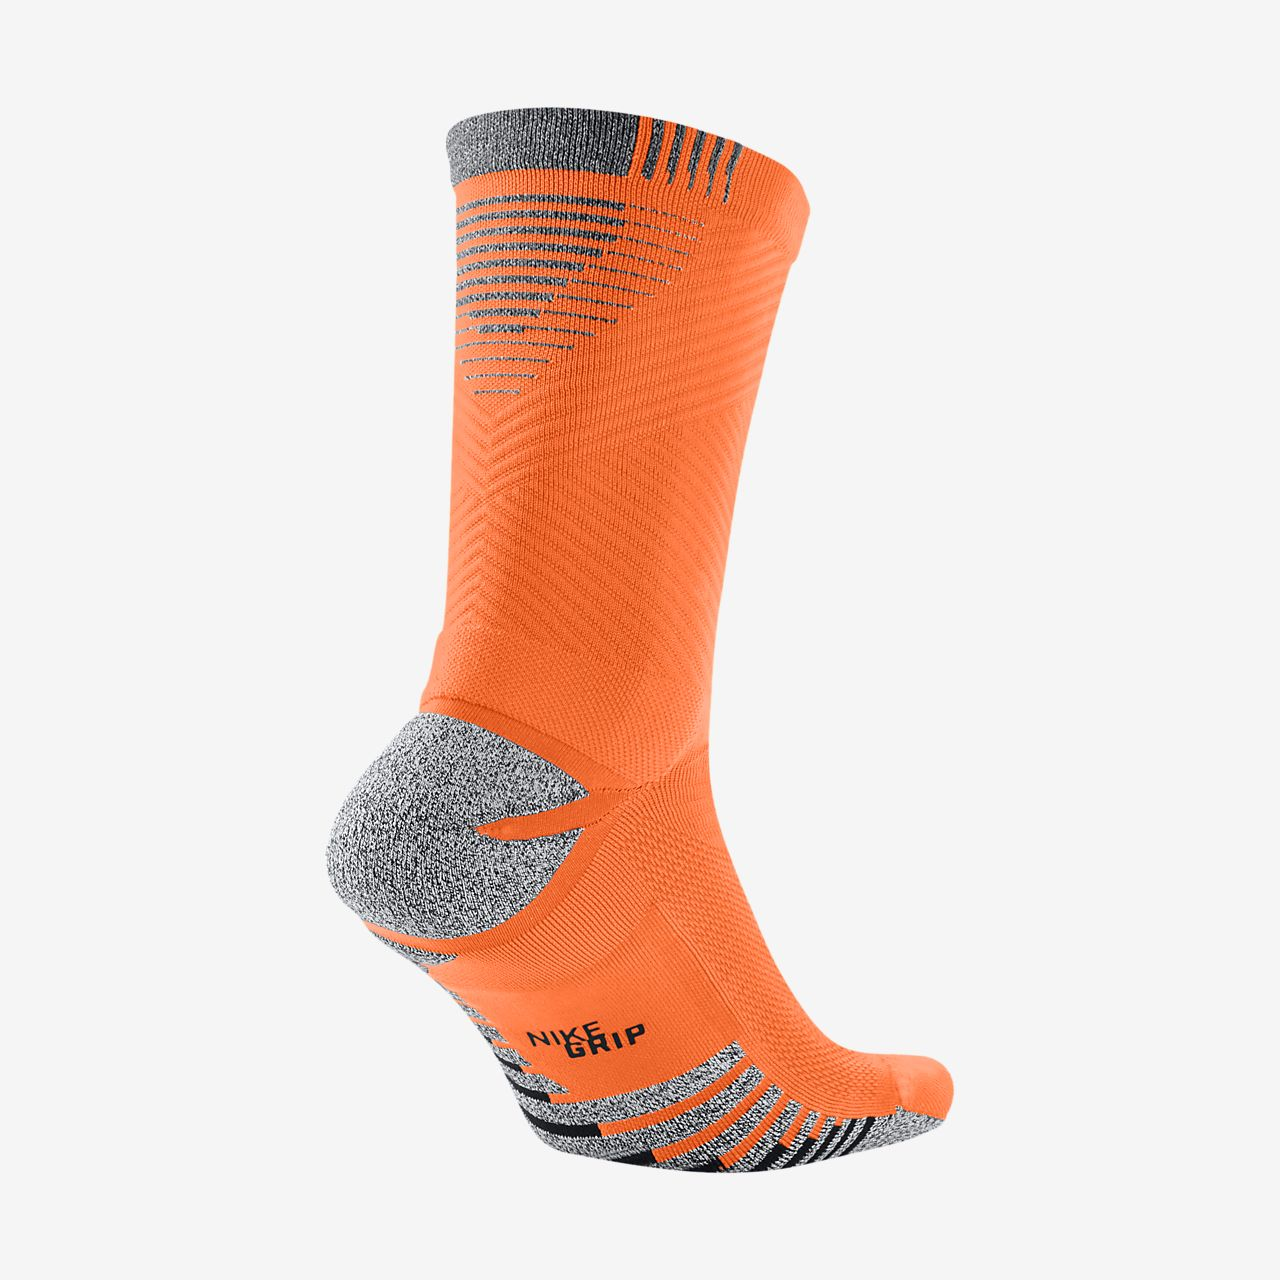 0476e4d0d NikeGrip Strike Light Crew Football Socks. Nike.com IN